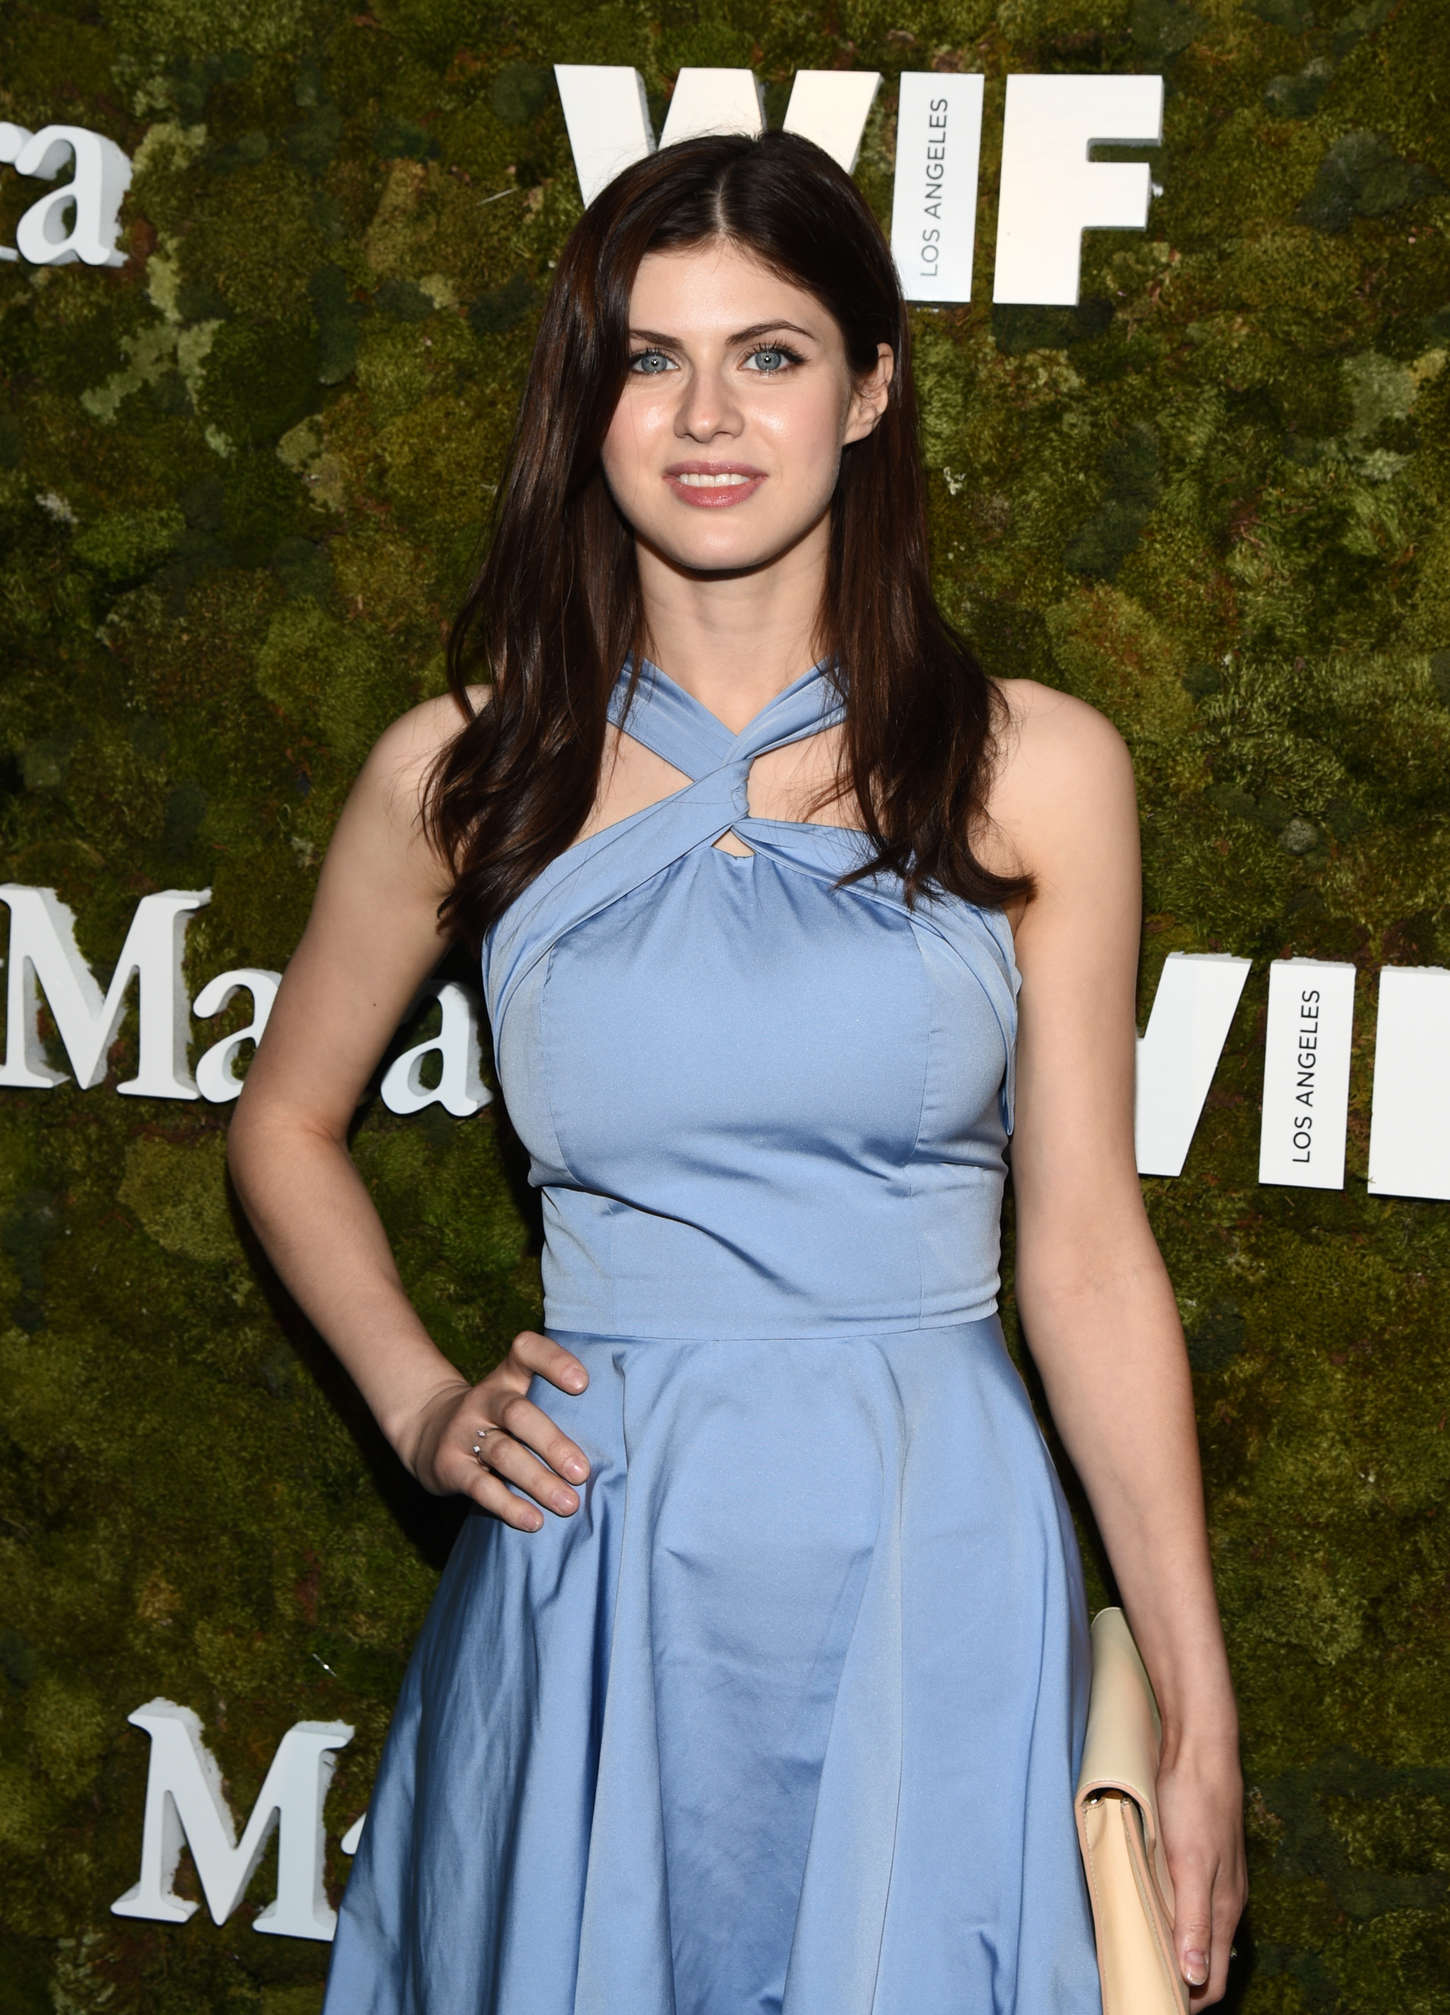 Alexandra Daddario - Max Mara Women In Film Face Of The Future Award Event 2015 in West Hollywood